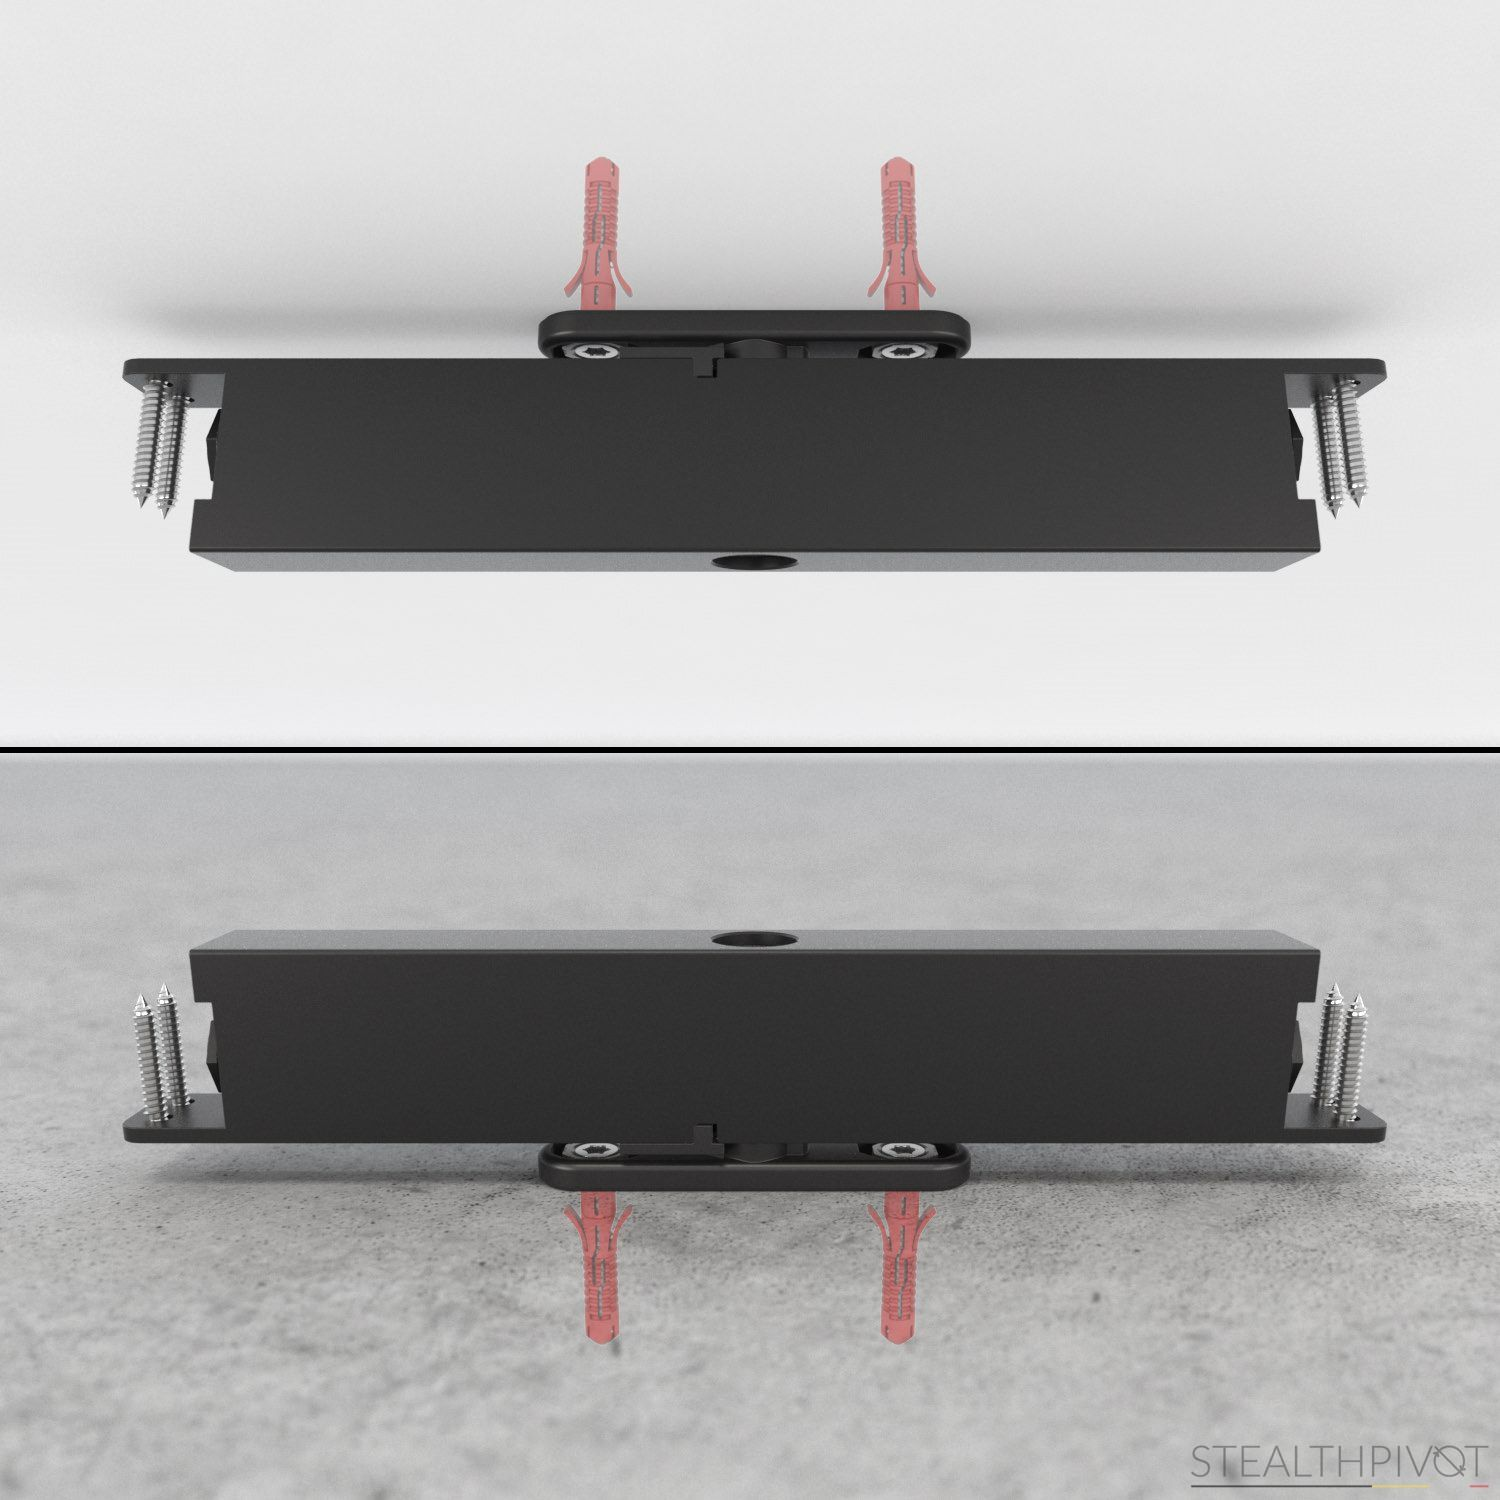 Stealth pivot pivoting hinge without floor spring